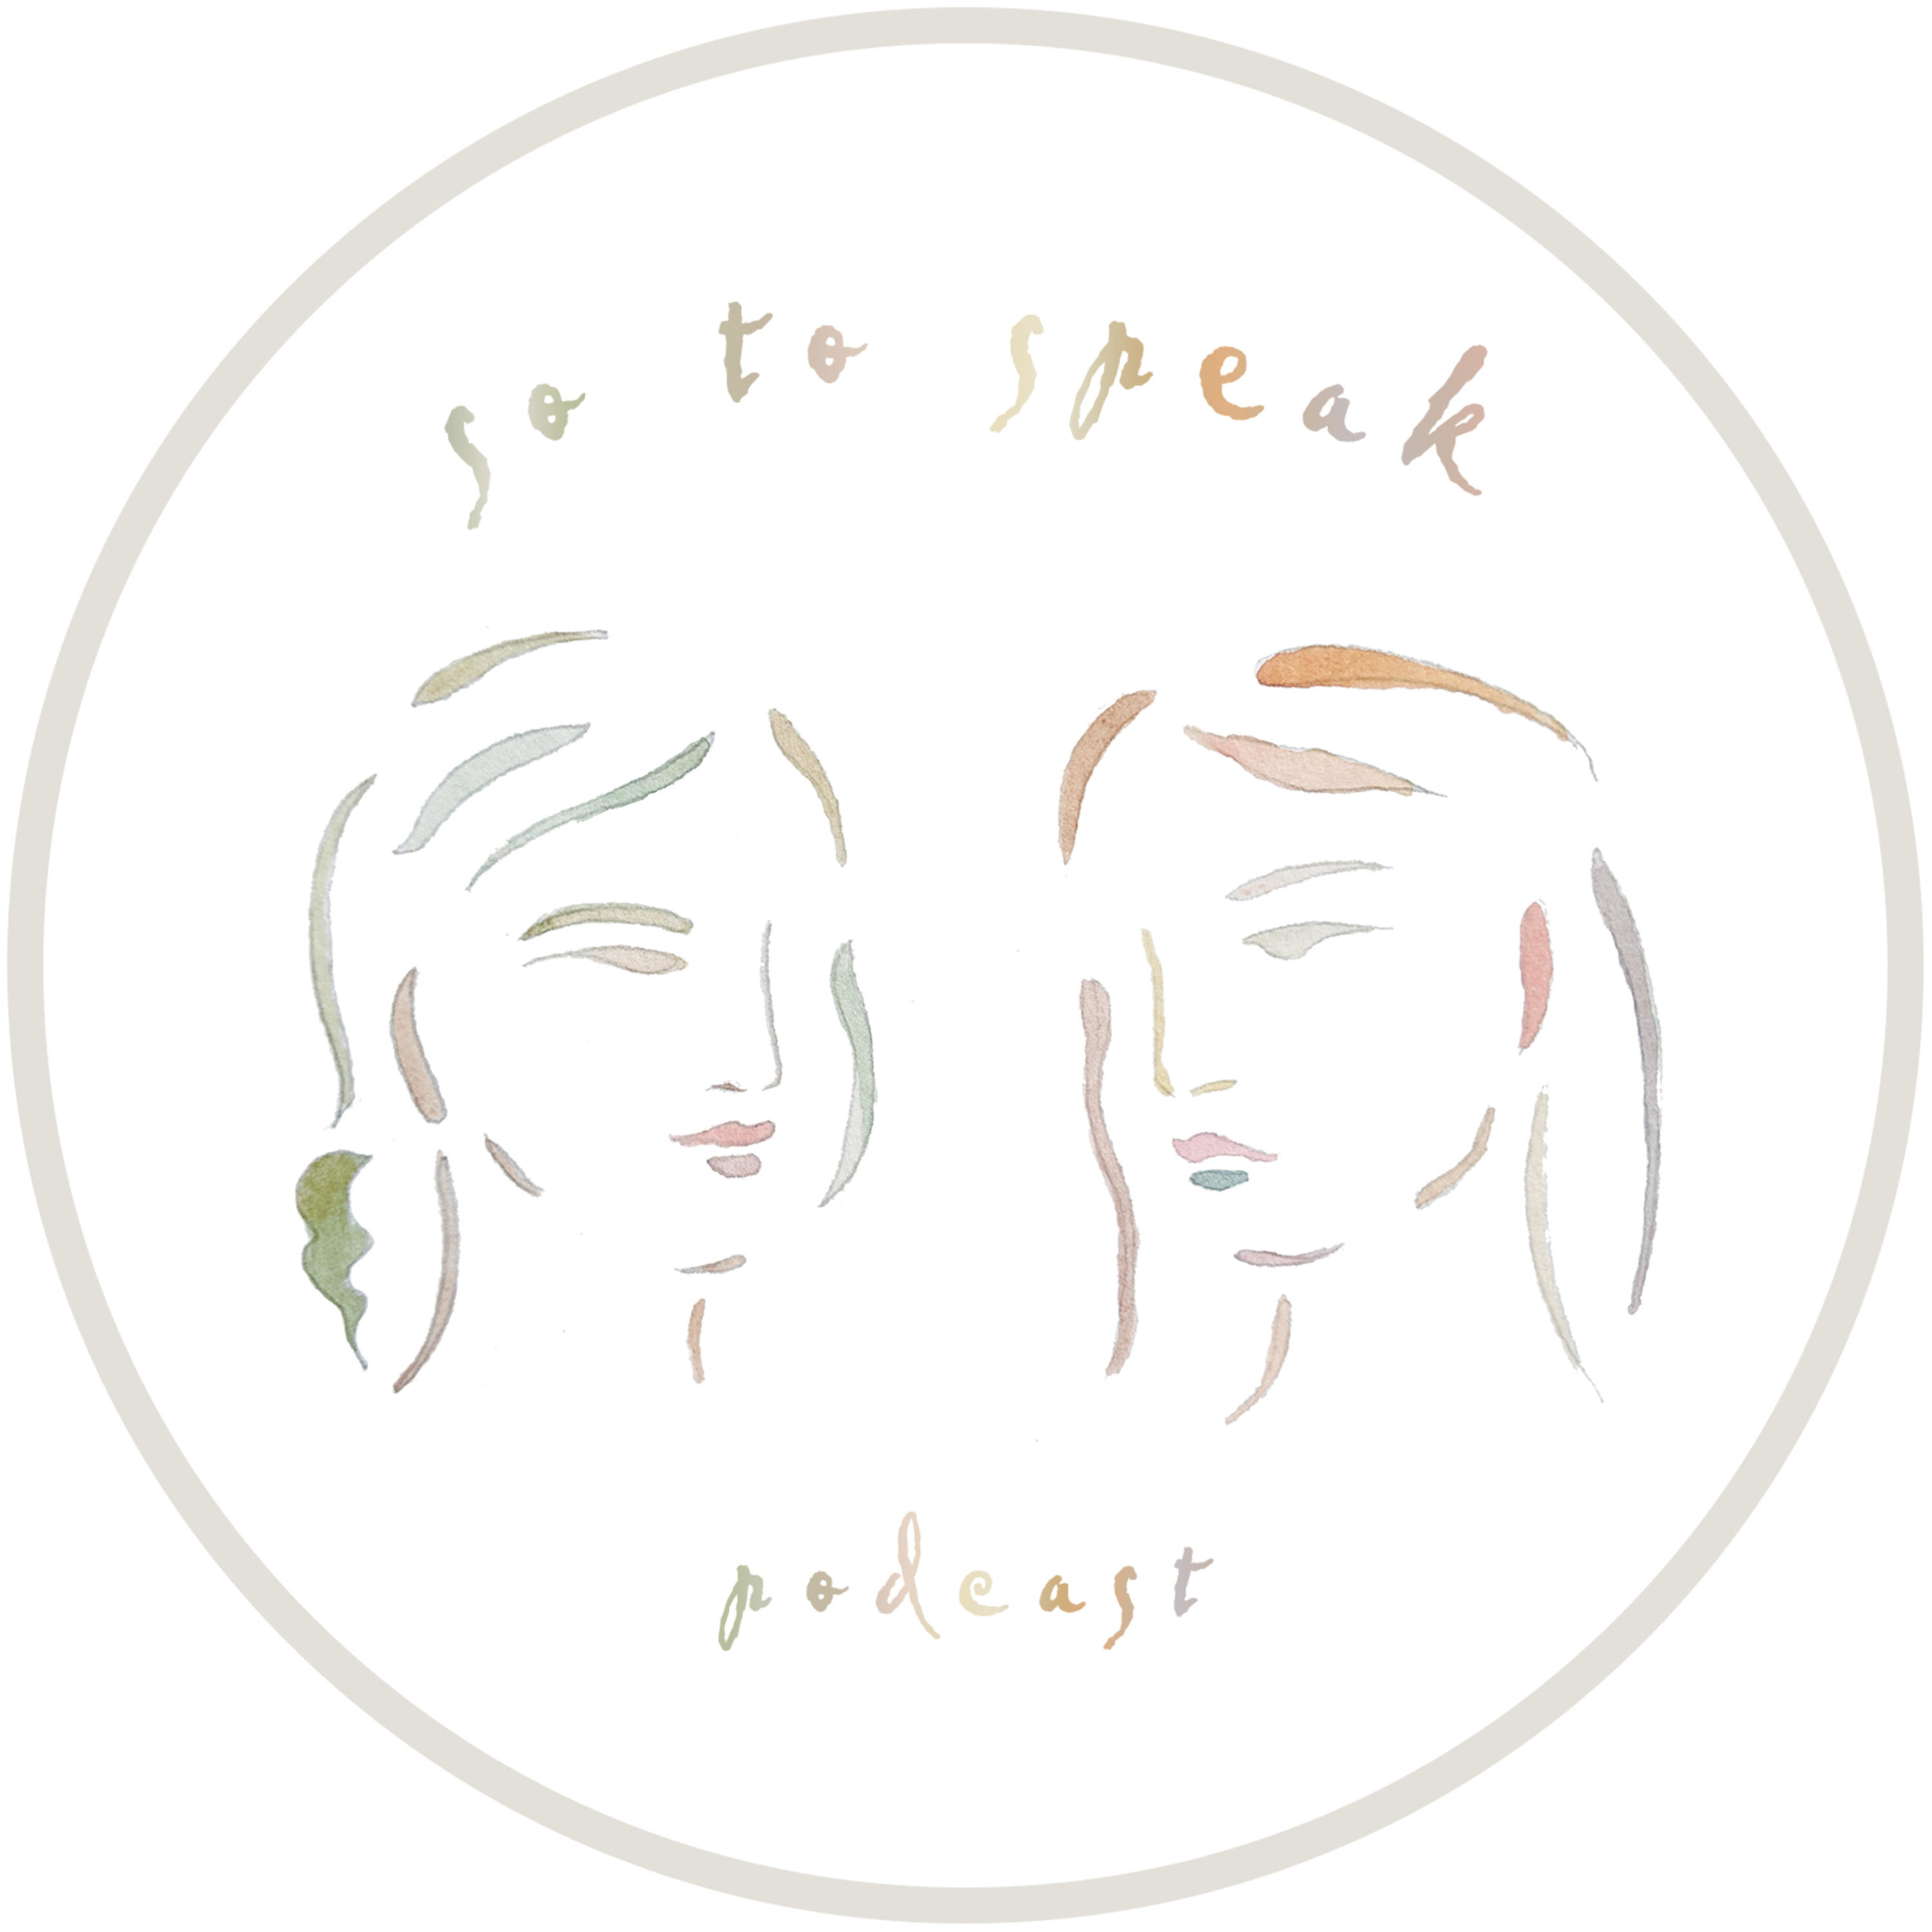 So to Speak x Ep. 01 : Lindsey Trout Hughes